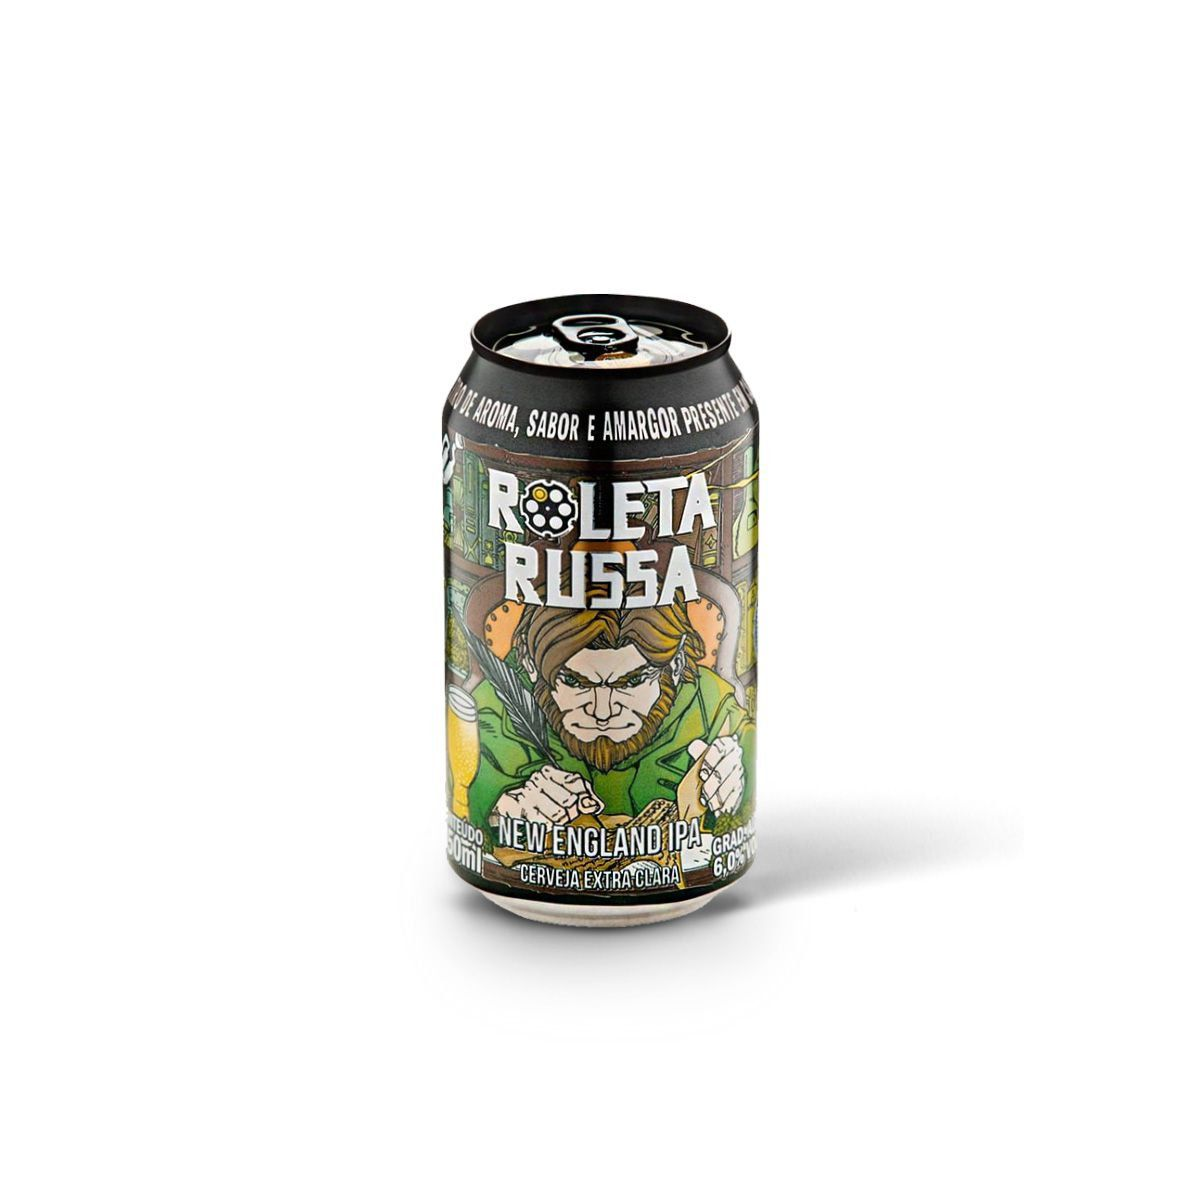 Roleta Russa New England IPA 350ml